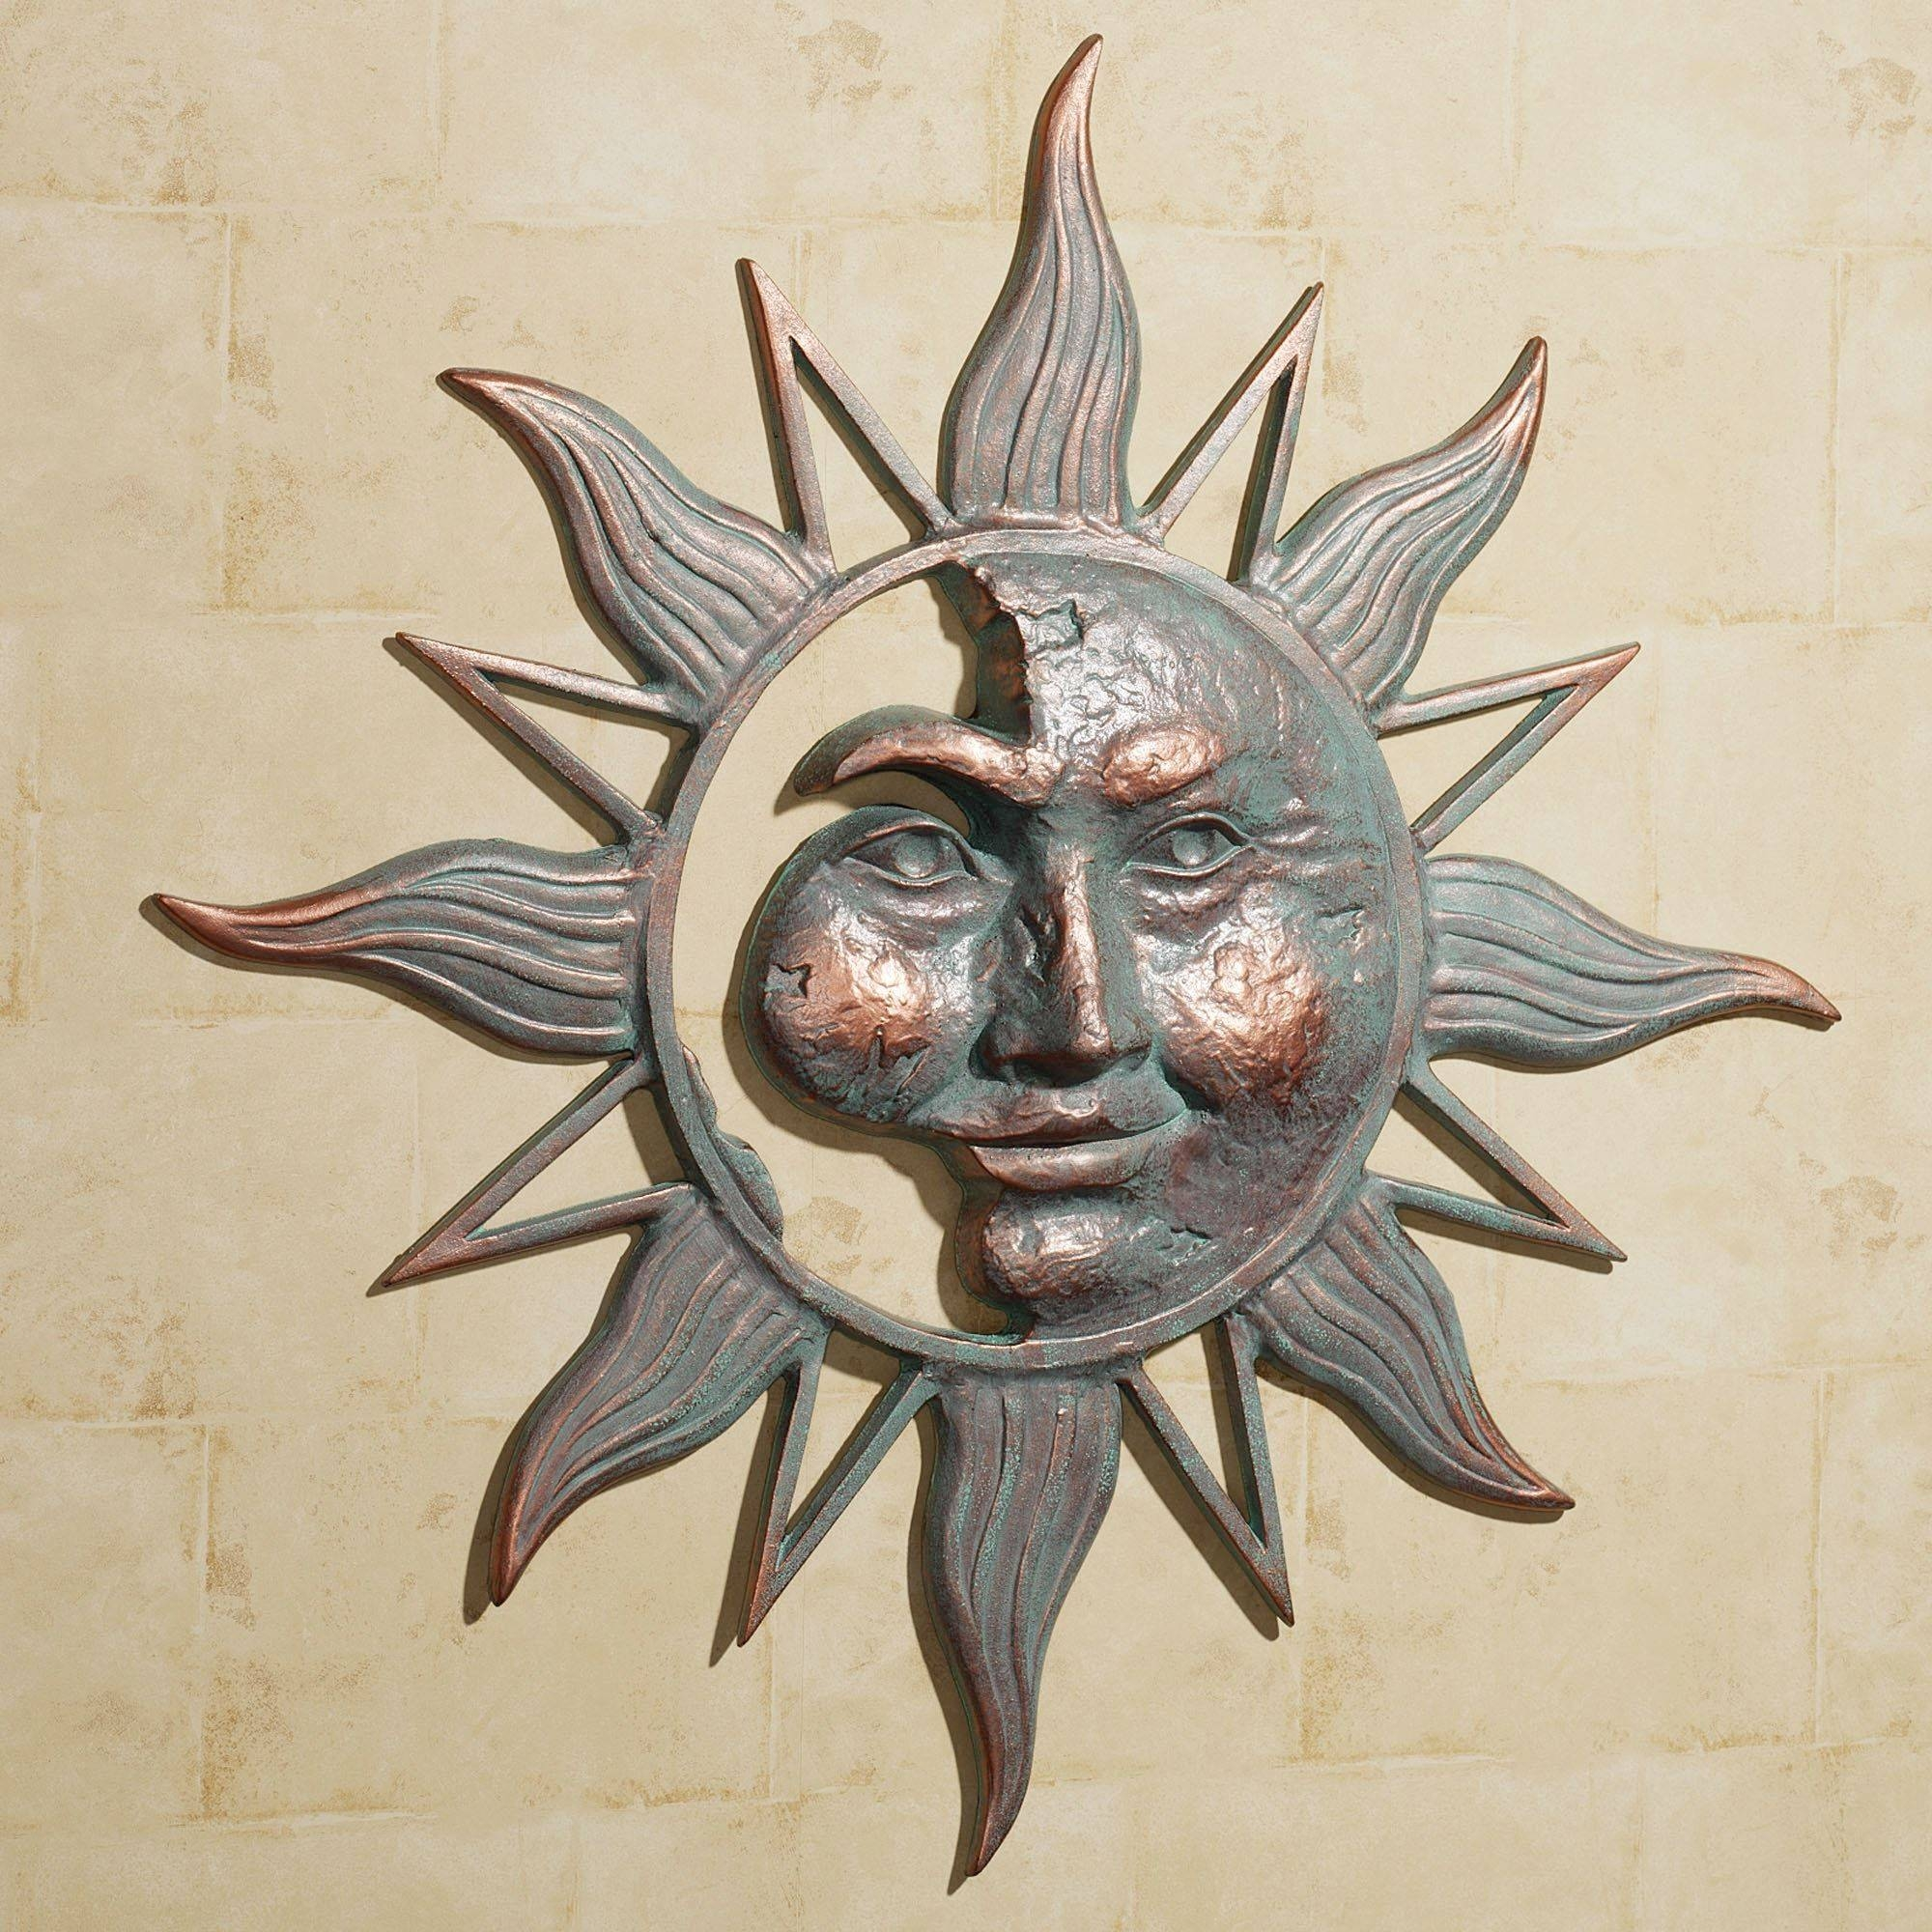 Outdoor Sun Wall Decor Metal Wall Decor Metal Wall Art Iron Wall In 2017 Outdoor Metal Wall Art Decors (View 16 of 20)